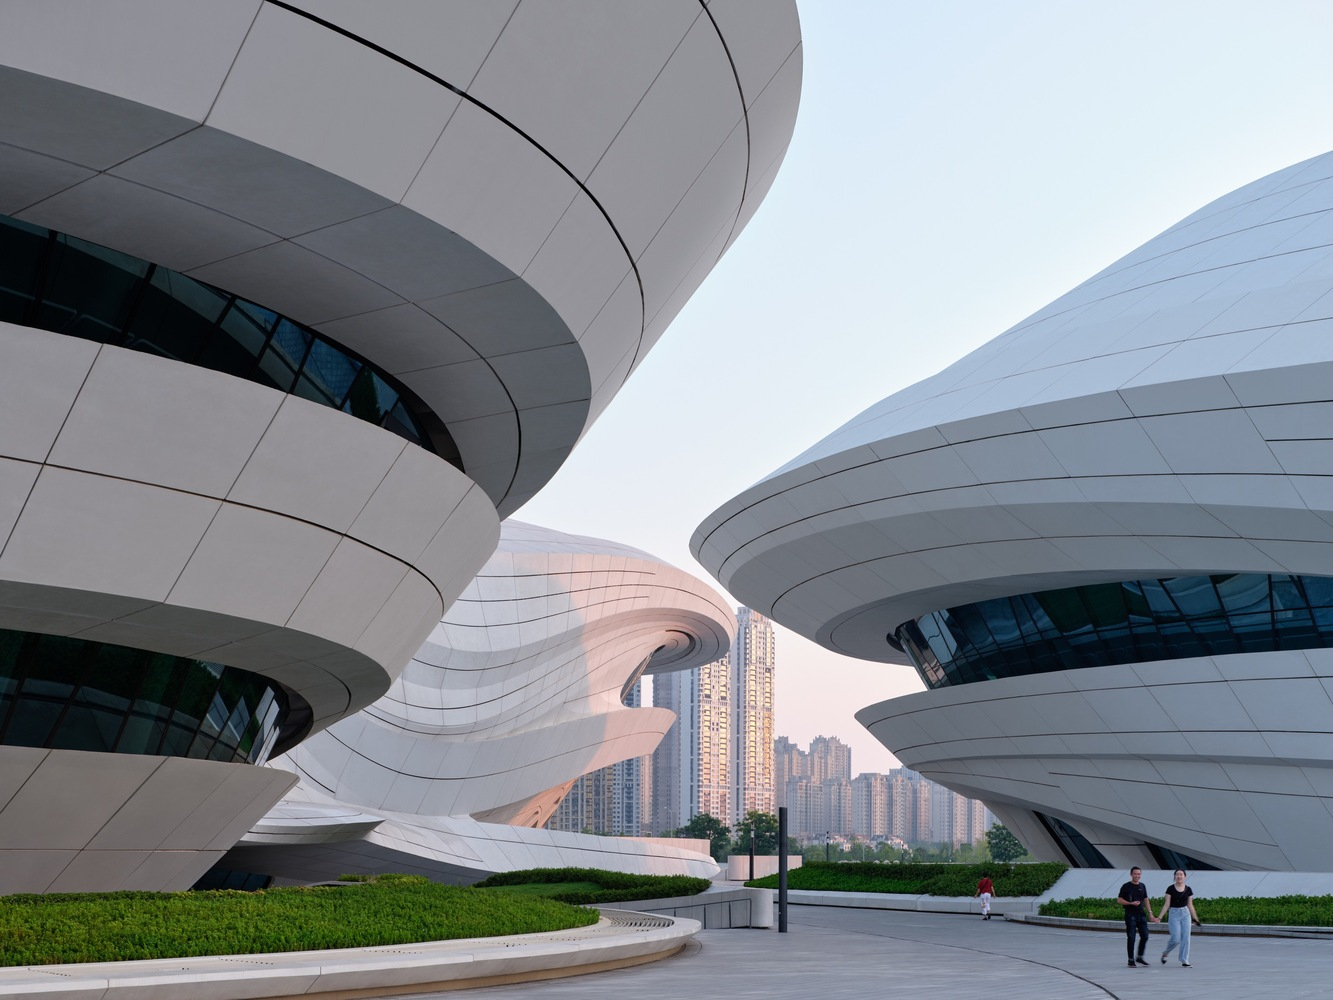 2_Changsha Meixihu International Culture and Art Centre_Zaha Hadid Architects_Inspirationist